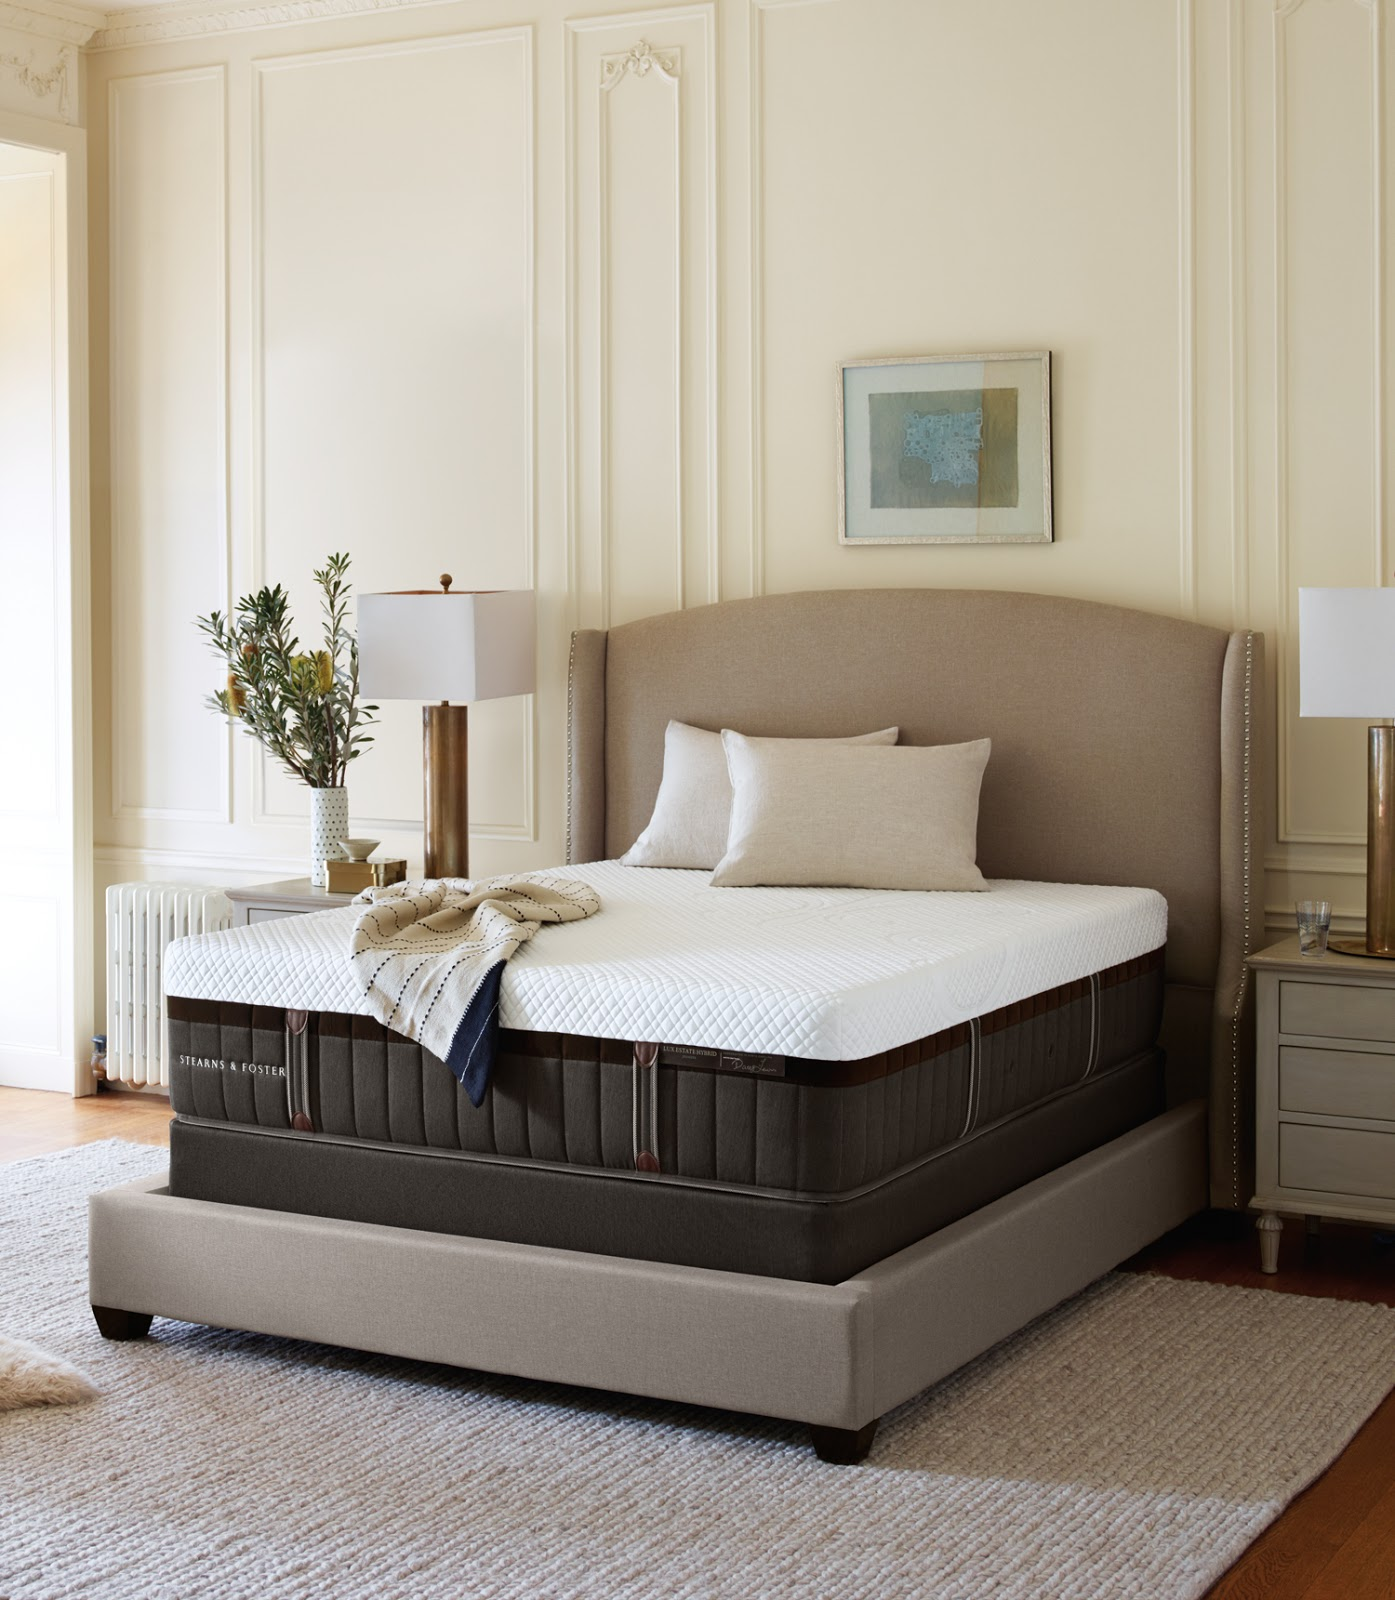 Appliance factory blog how to pick the right mattress - Picking the right matress ...